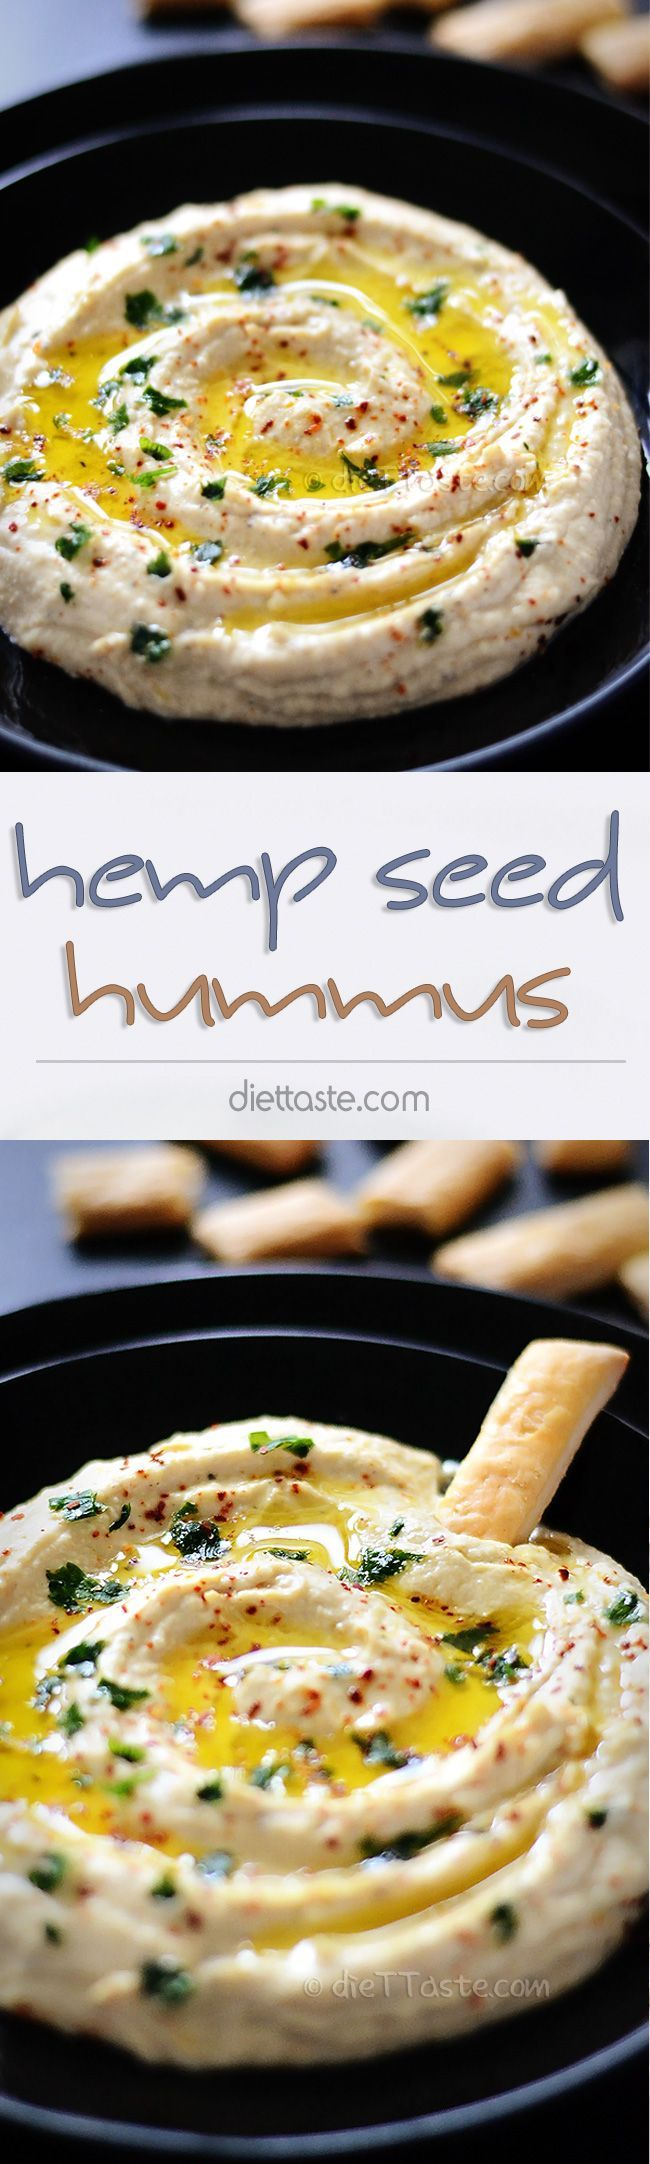 Hemp Seed Hummus - vegan, low carb, with healthy fats; great as a dip, a sandwich spread or a filling for pita bread or tortillas - diettaste.com